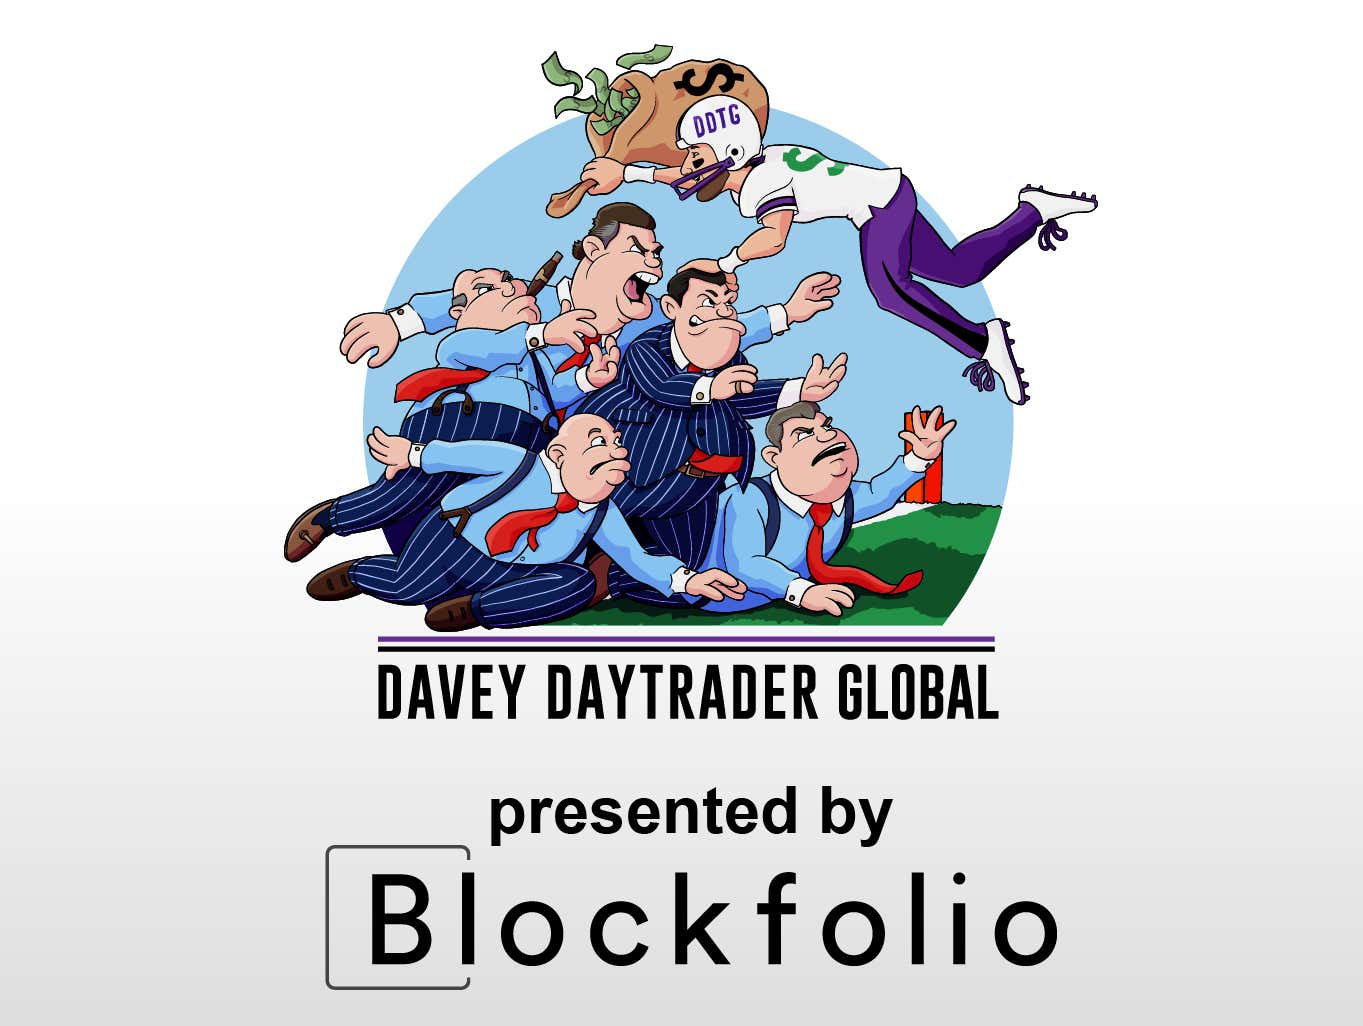 Davey Day Trader presented by Blockfolio - April 19, 2021